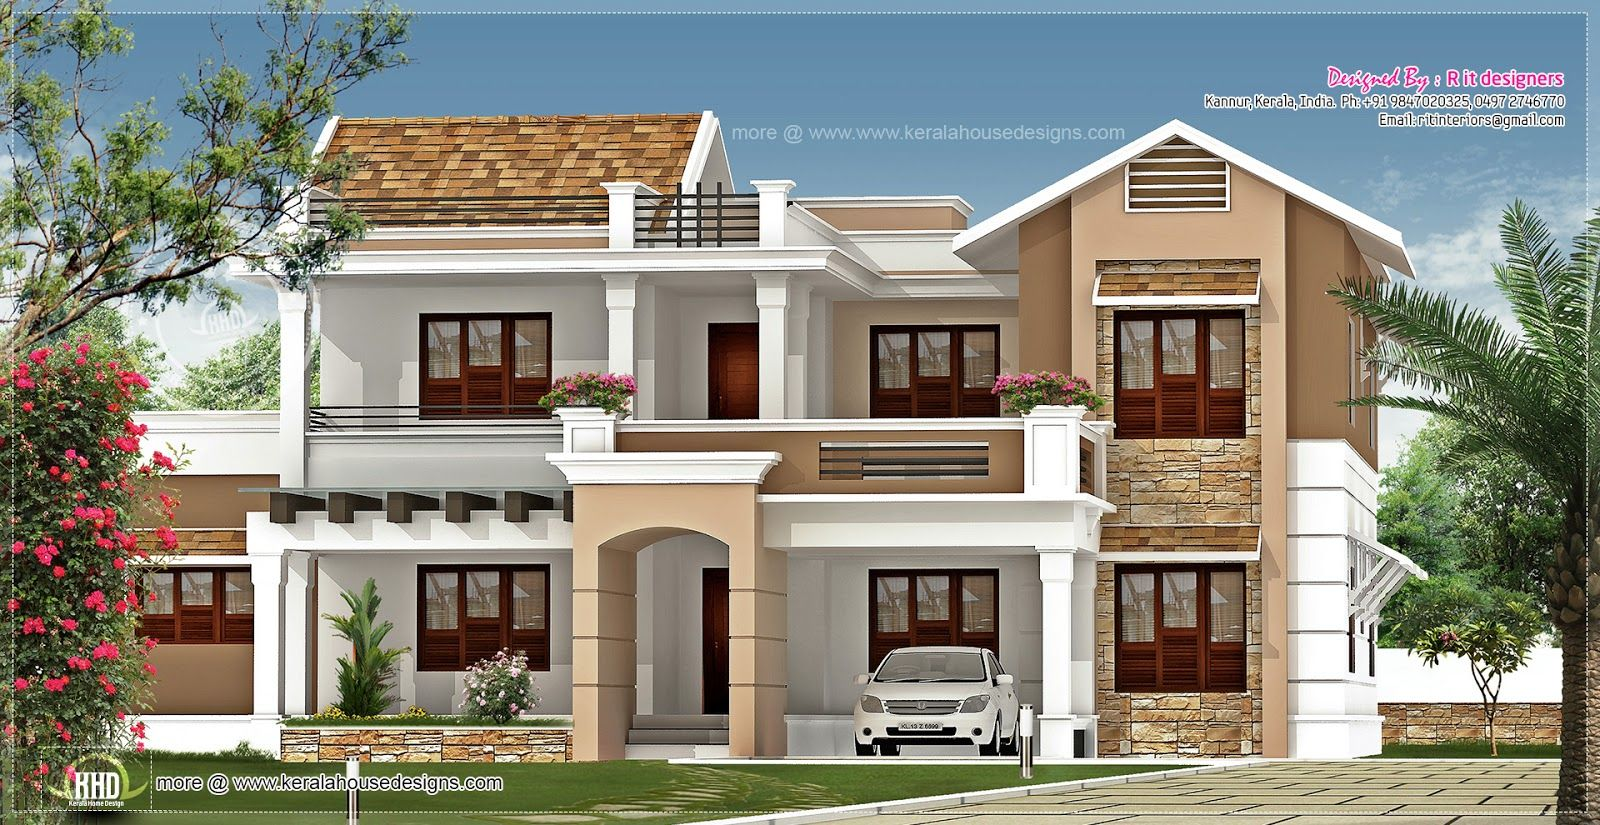 Simple Exterior House Designs In Kerala 800 square foot house exterior design | 347 square yards designed